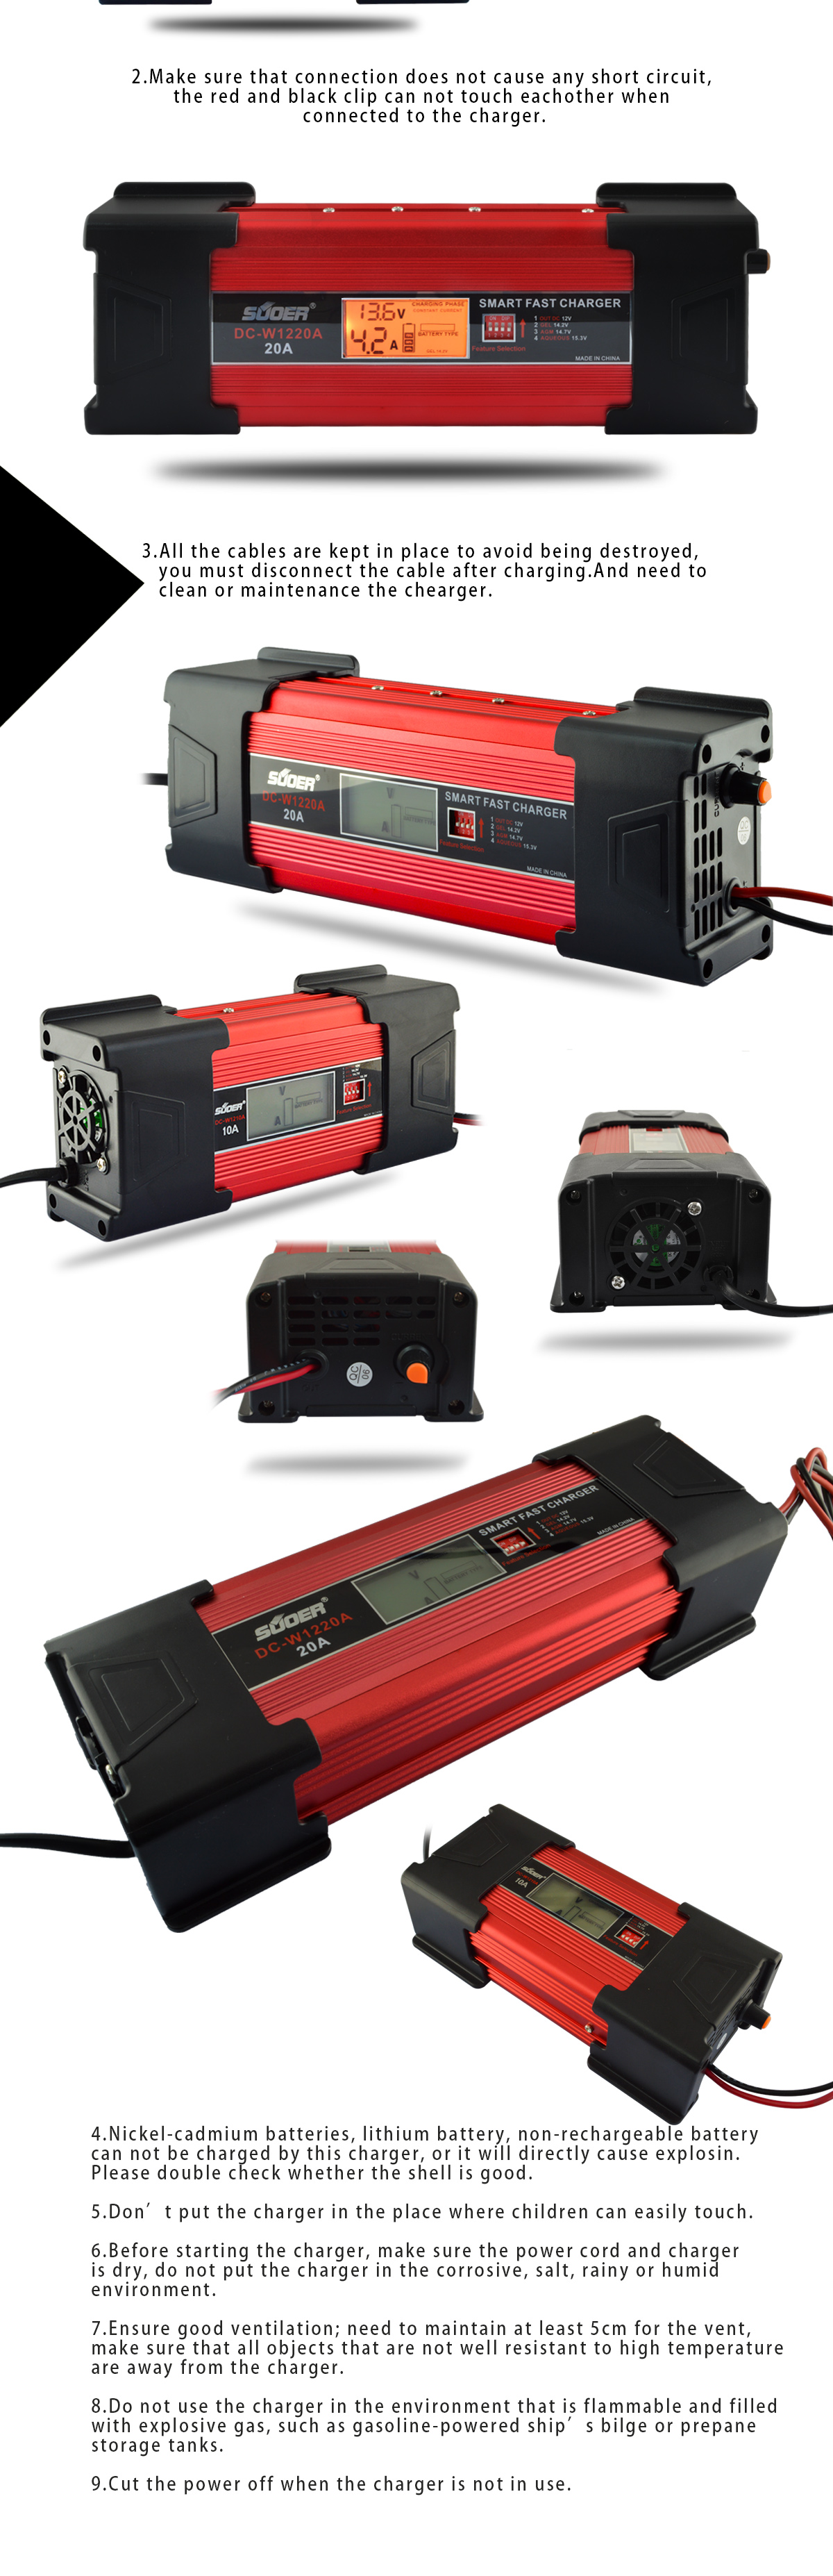 DC-W1210A - AGM/GEL Battery Charger - Foshan Suoer